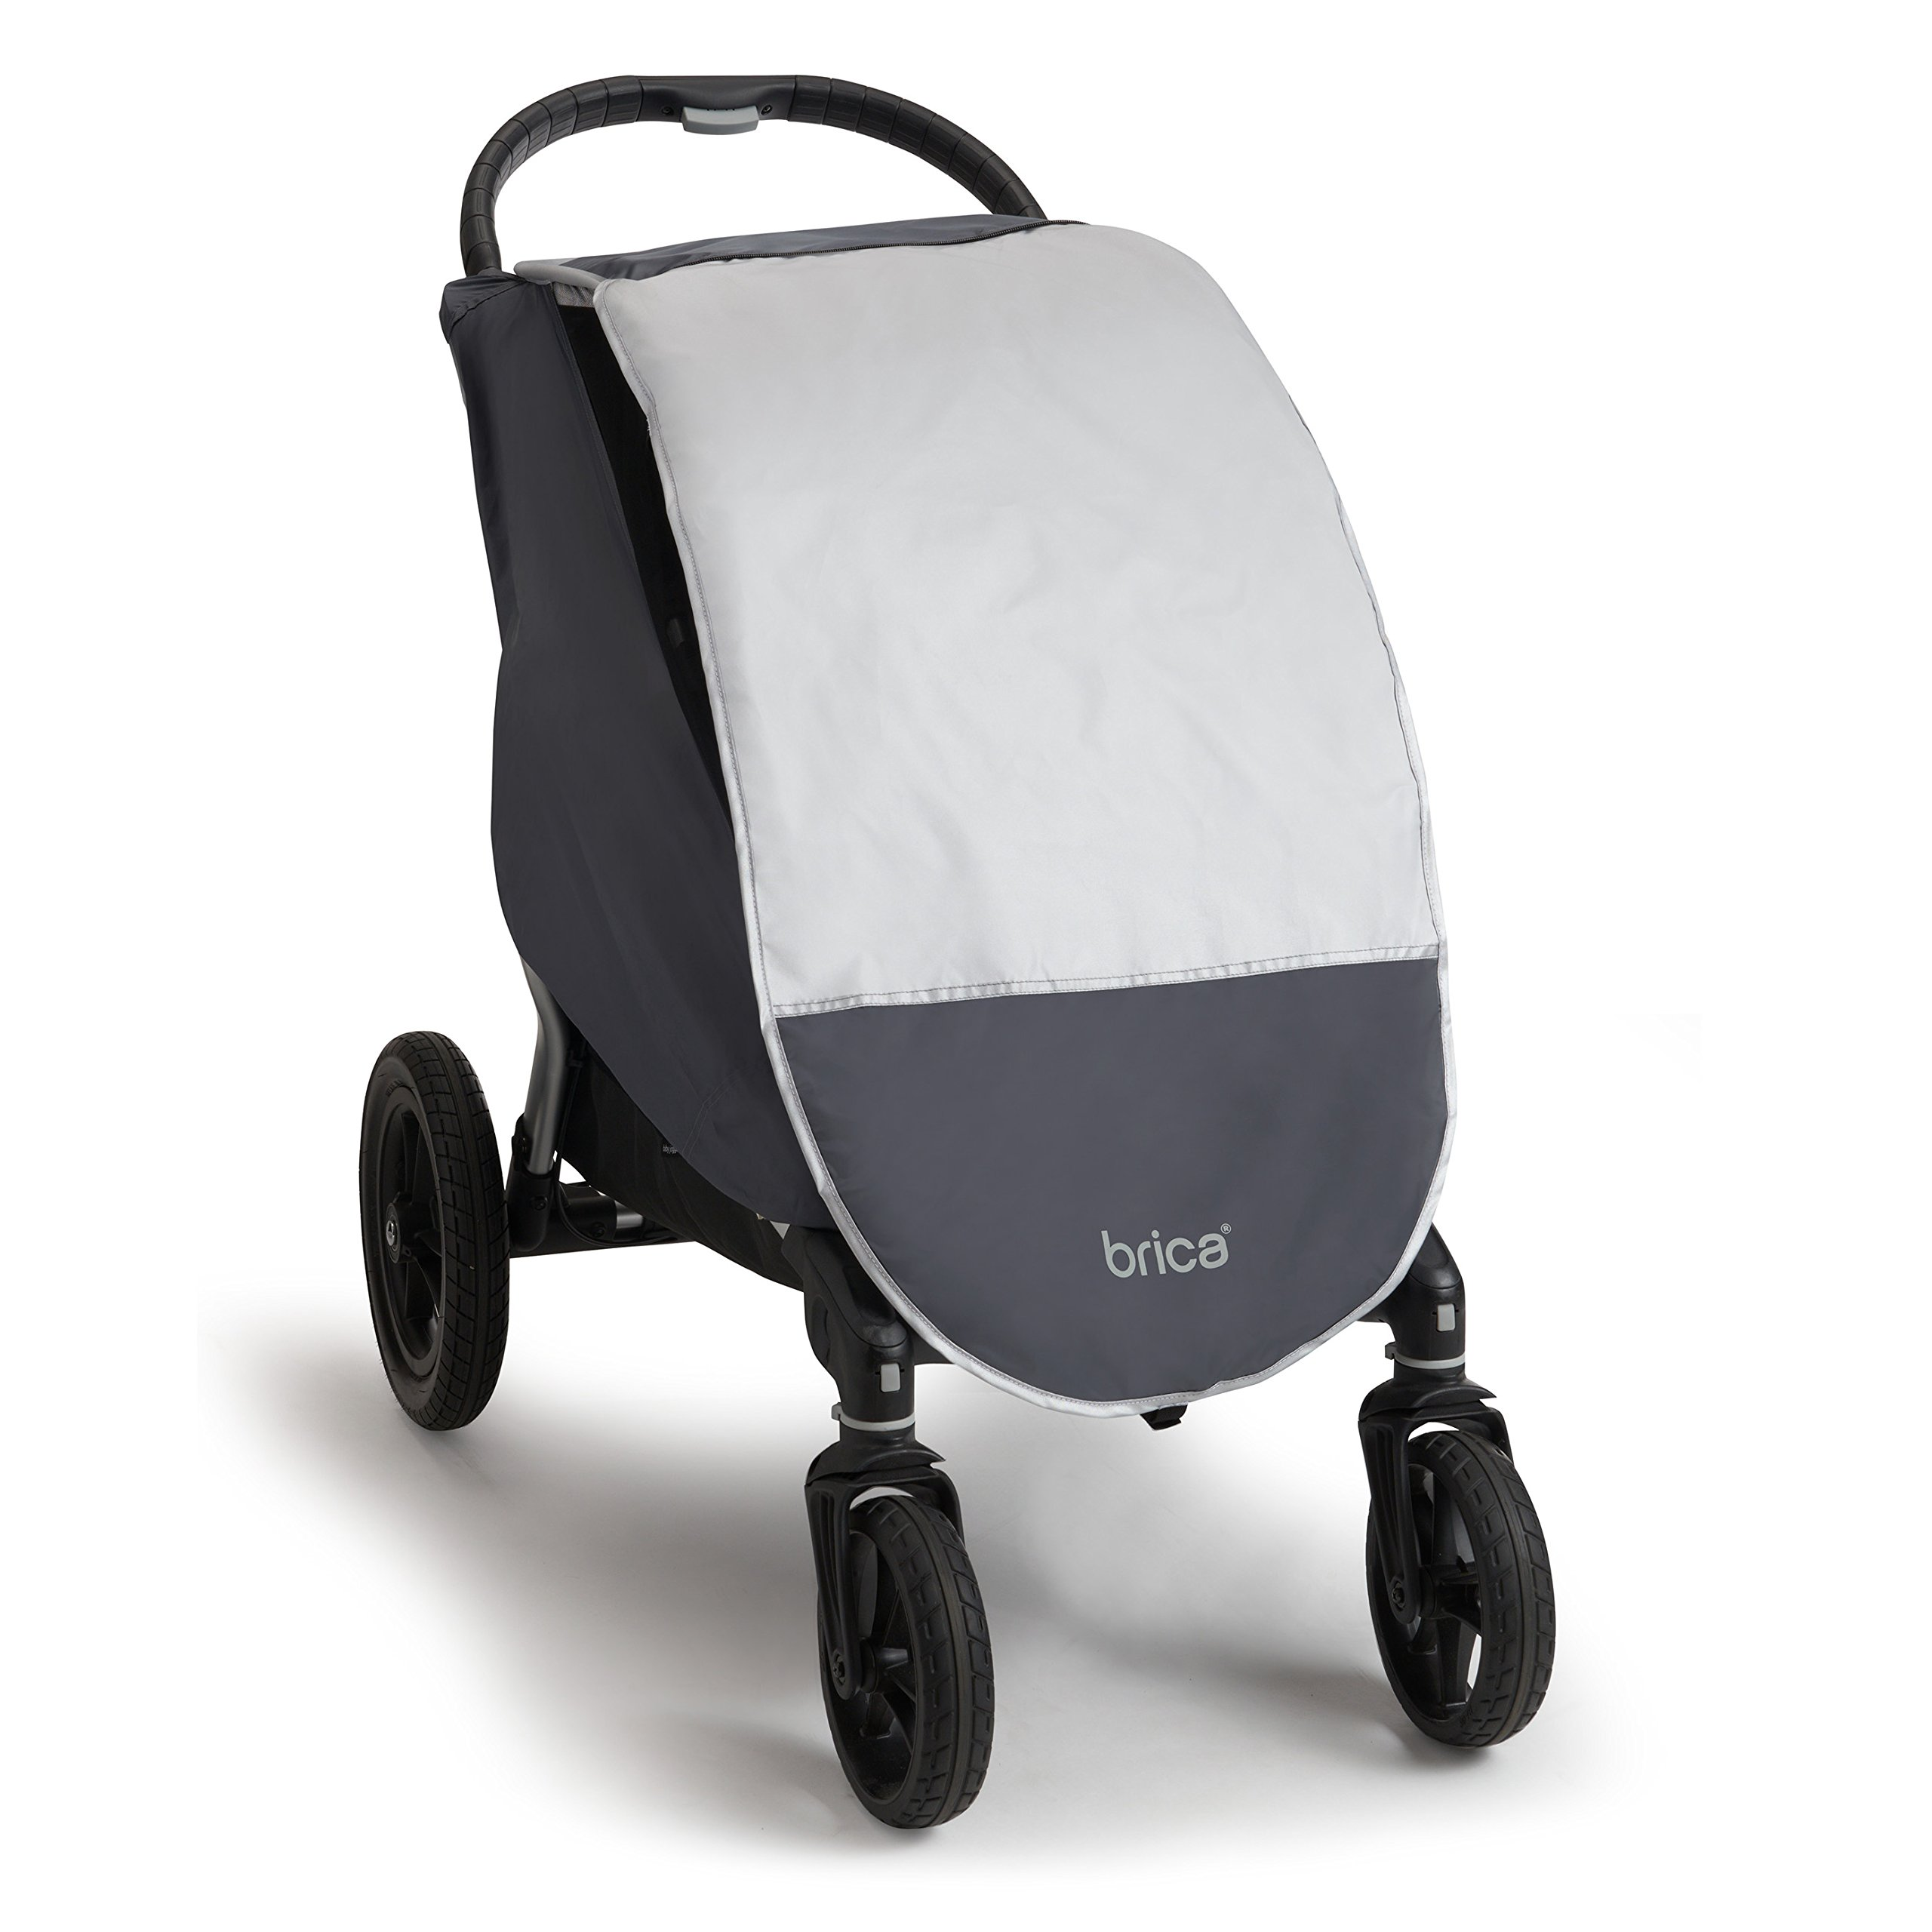 Munchkin Brica Shield Stroller Cover, Helps Block UVA/UVB Rays, Grey by Munchkin (Image #4)